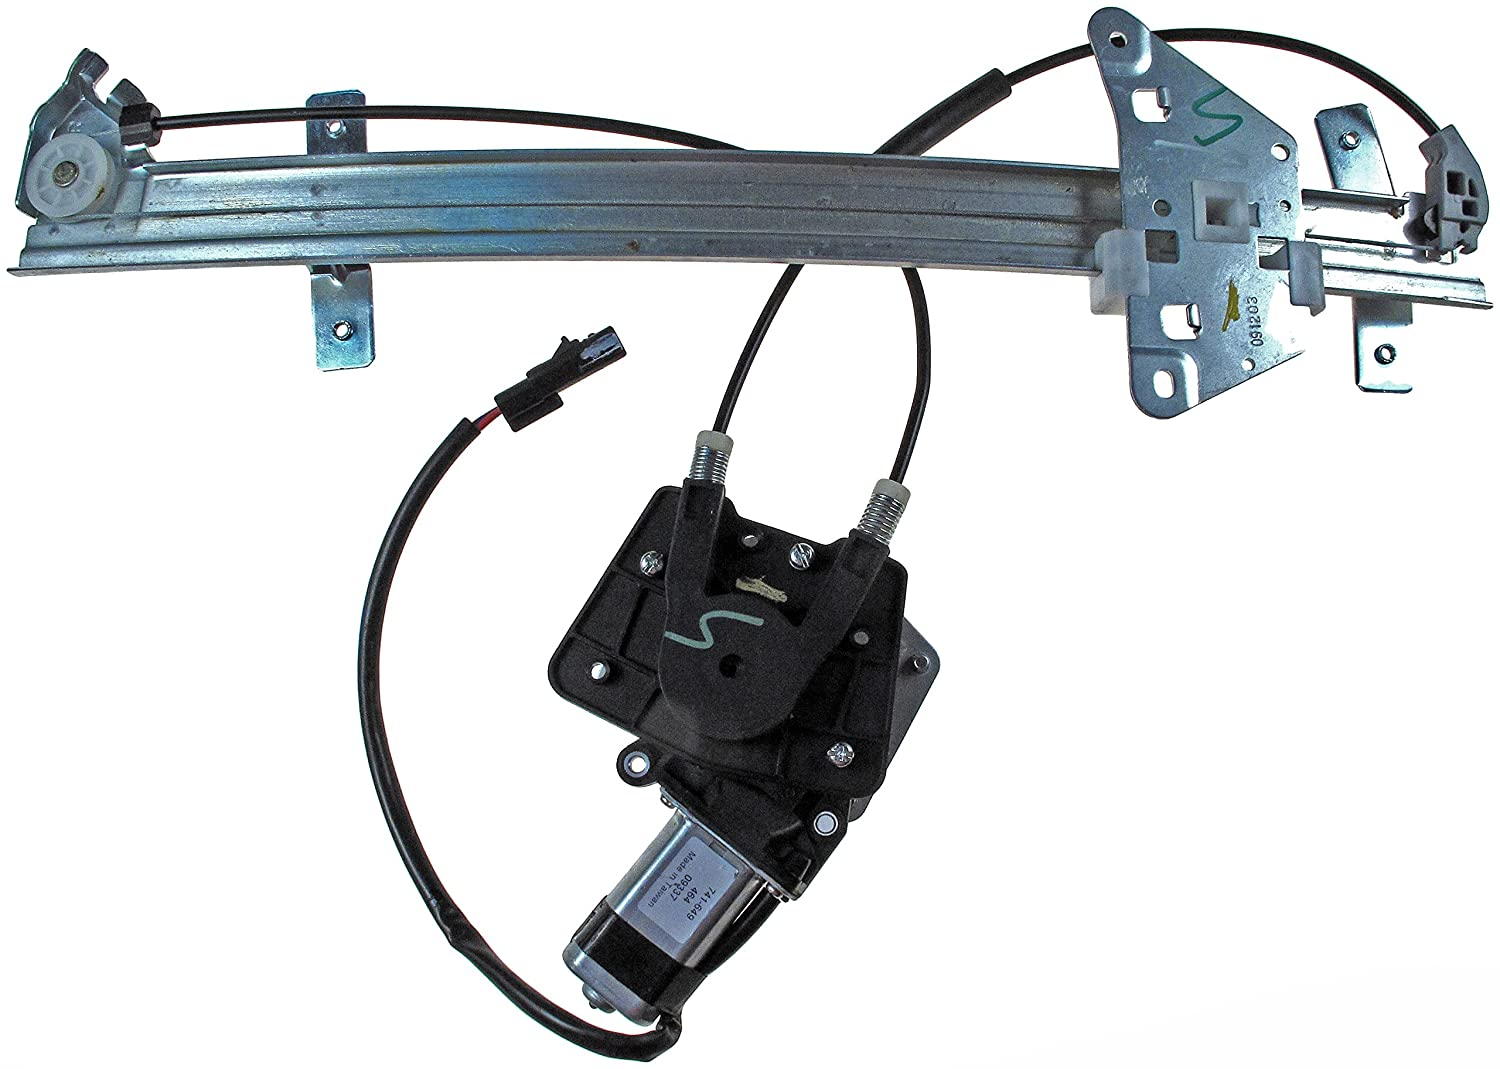 Amazon.com: Dorman 741-649 Front Driver Side Window Regulator with Motor  for Select Dodge Trucks: Automotive